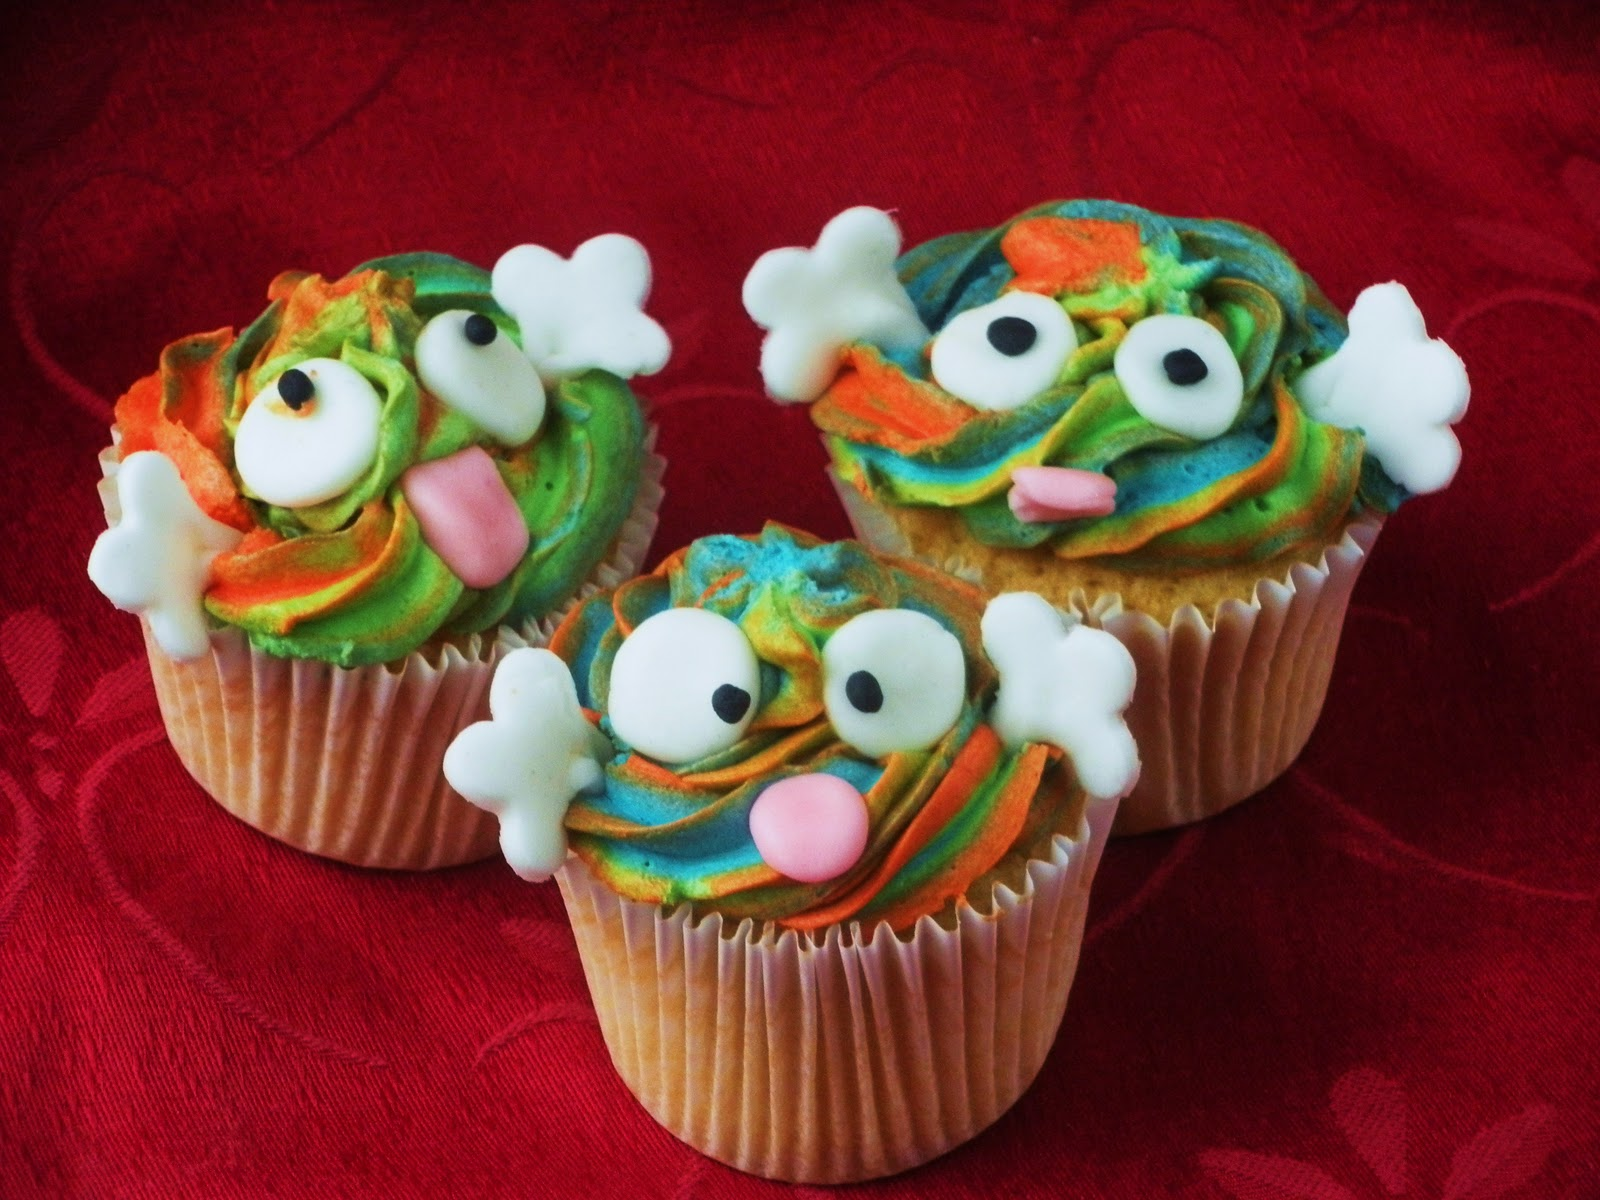 Creative cupcake decorating ideas for everyone for Creative cupcake recipes and decorating ideas